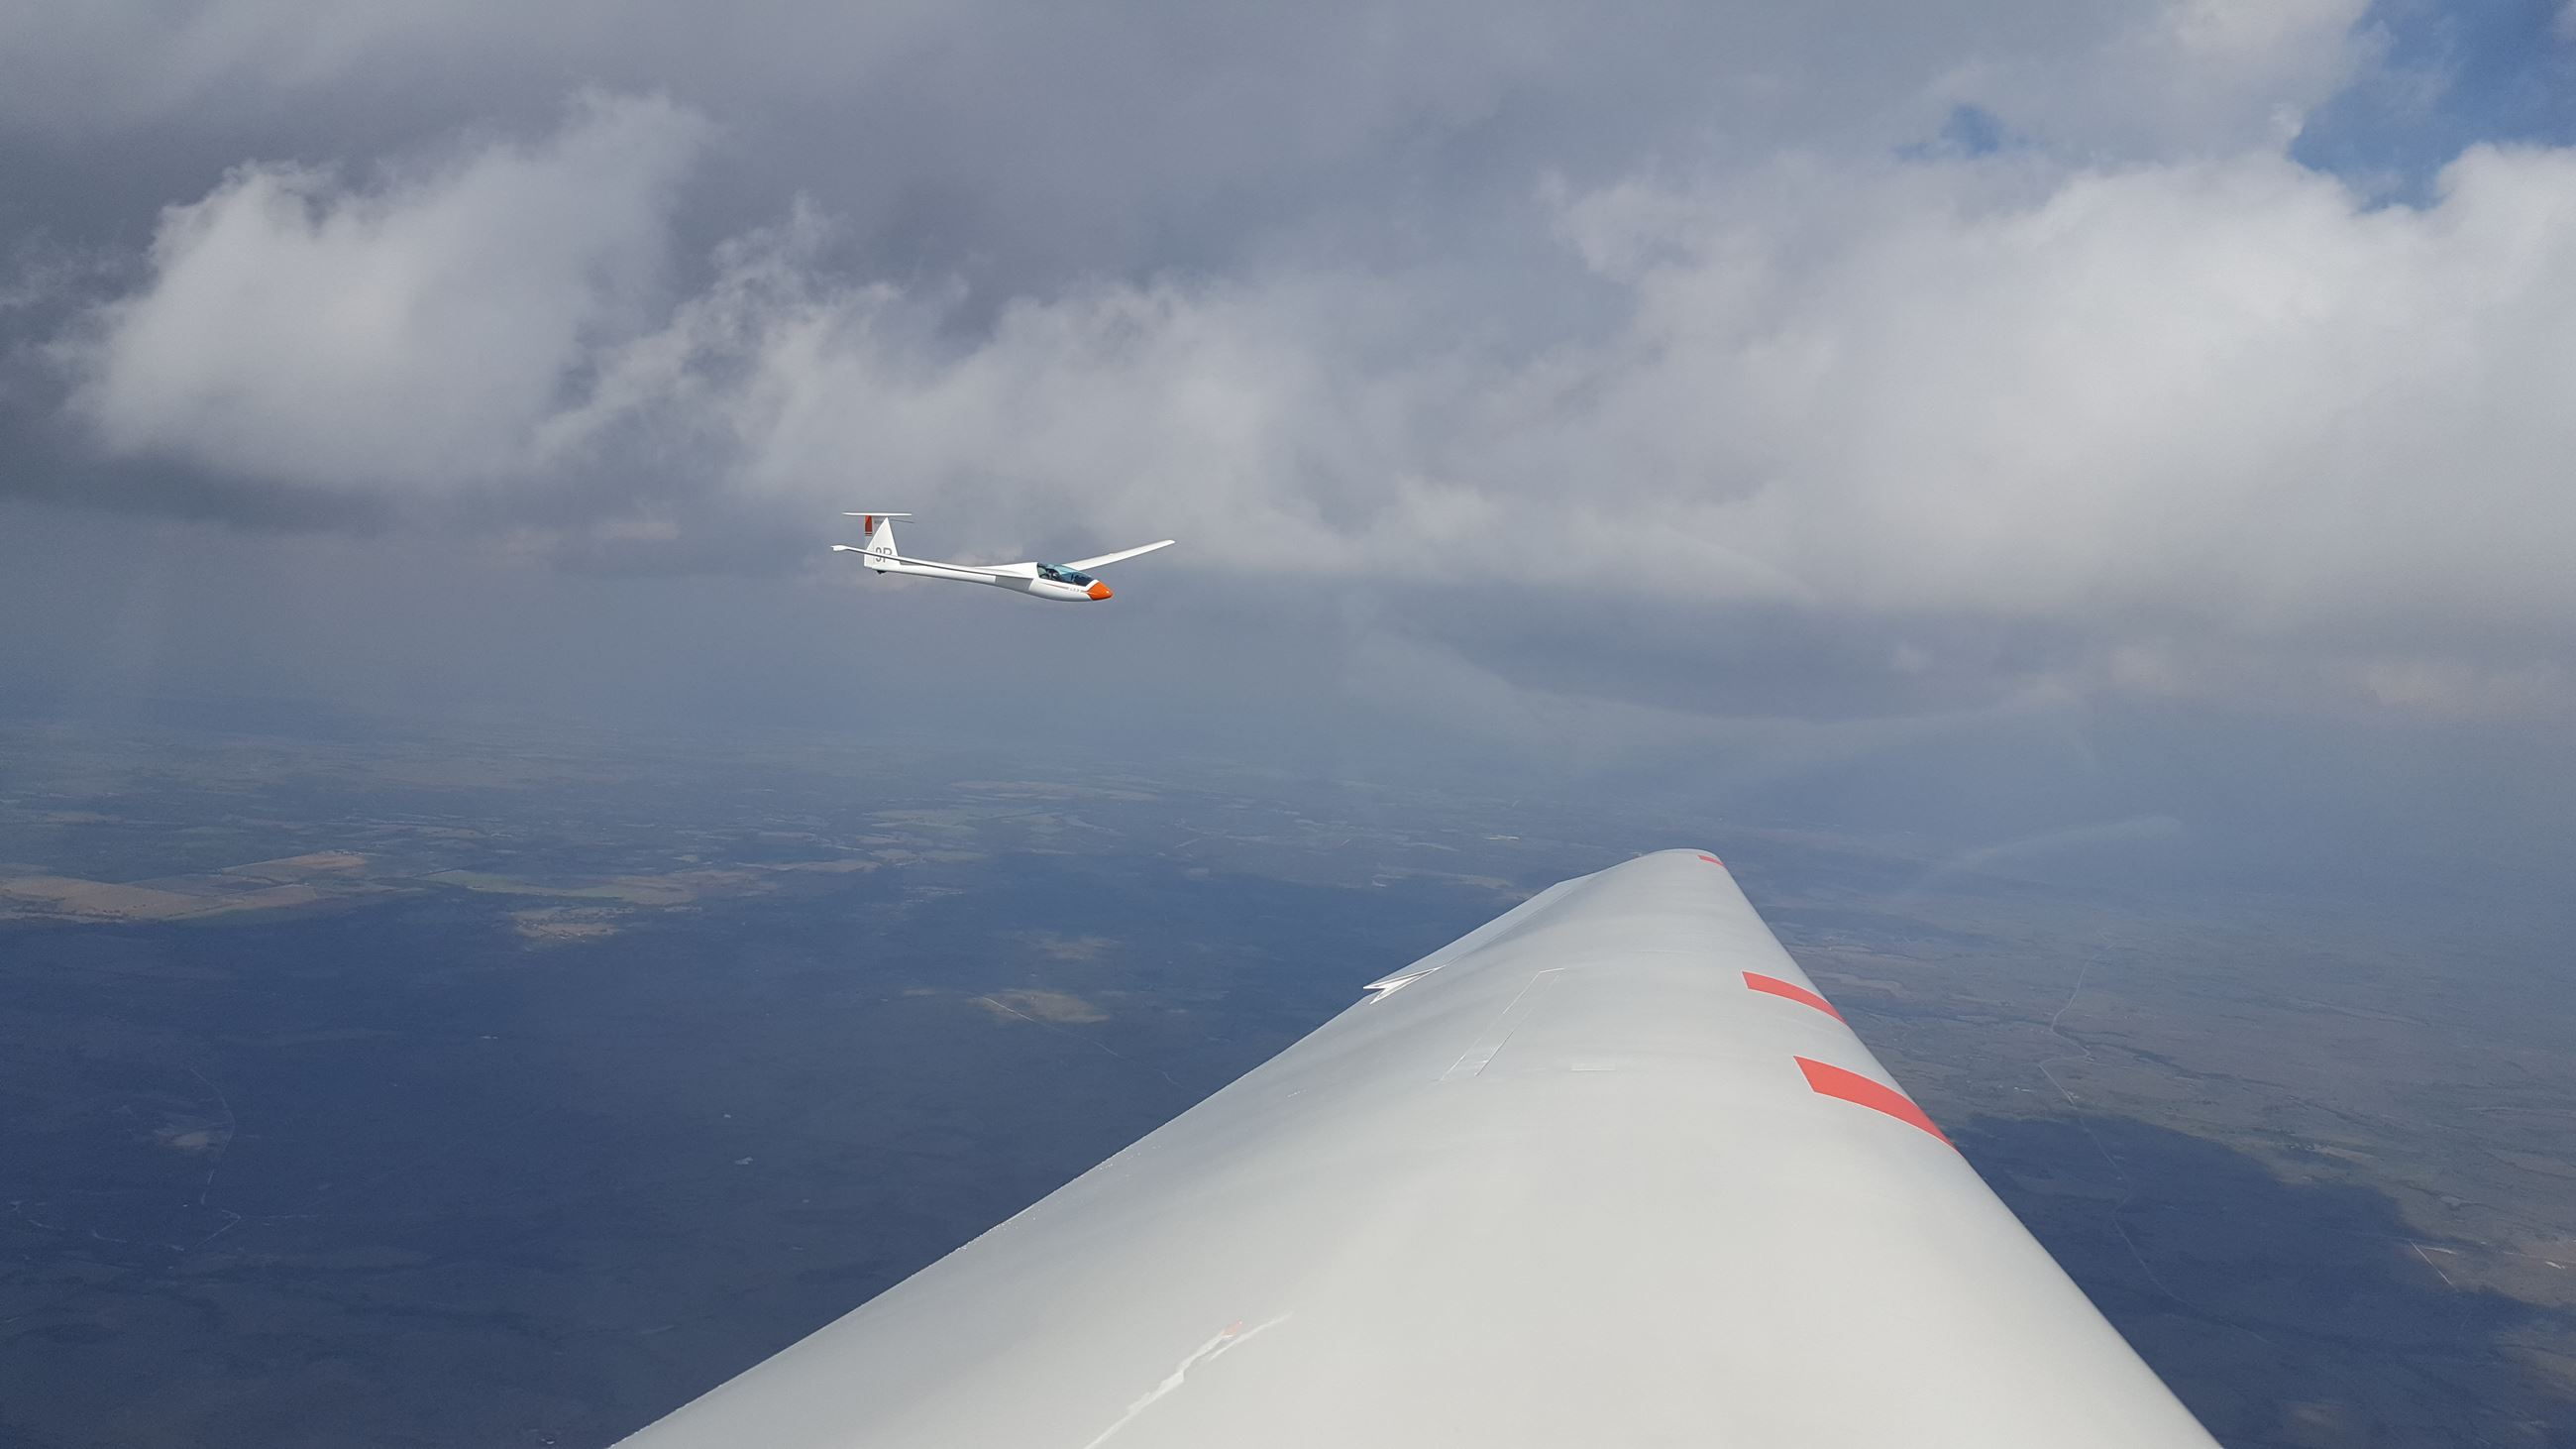 Picture of glider in the air from another glider